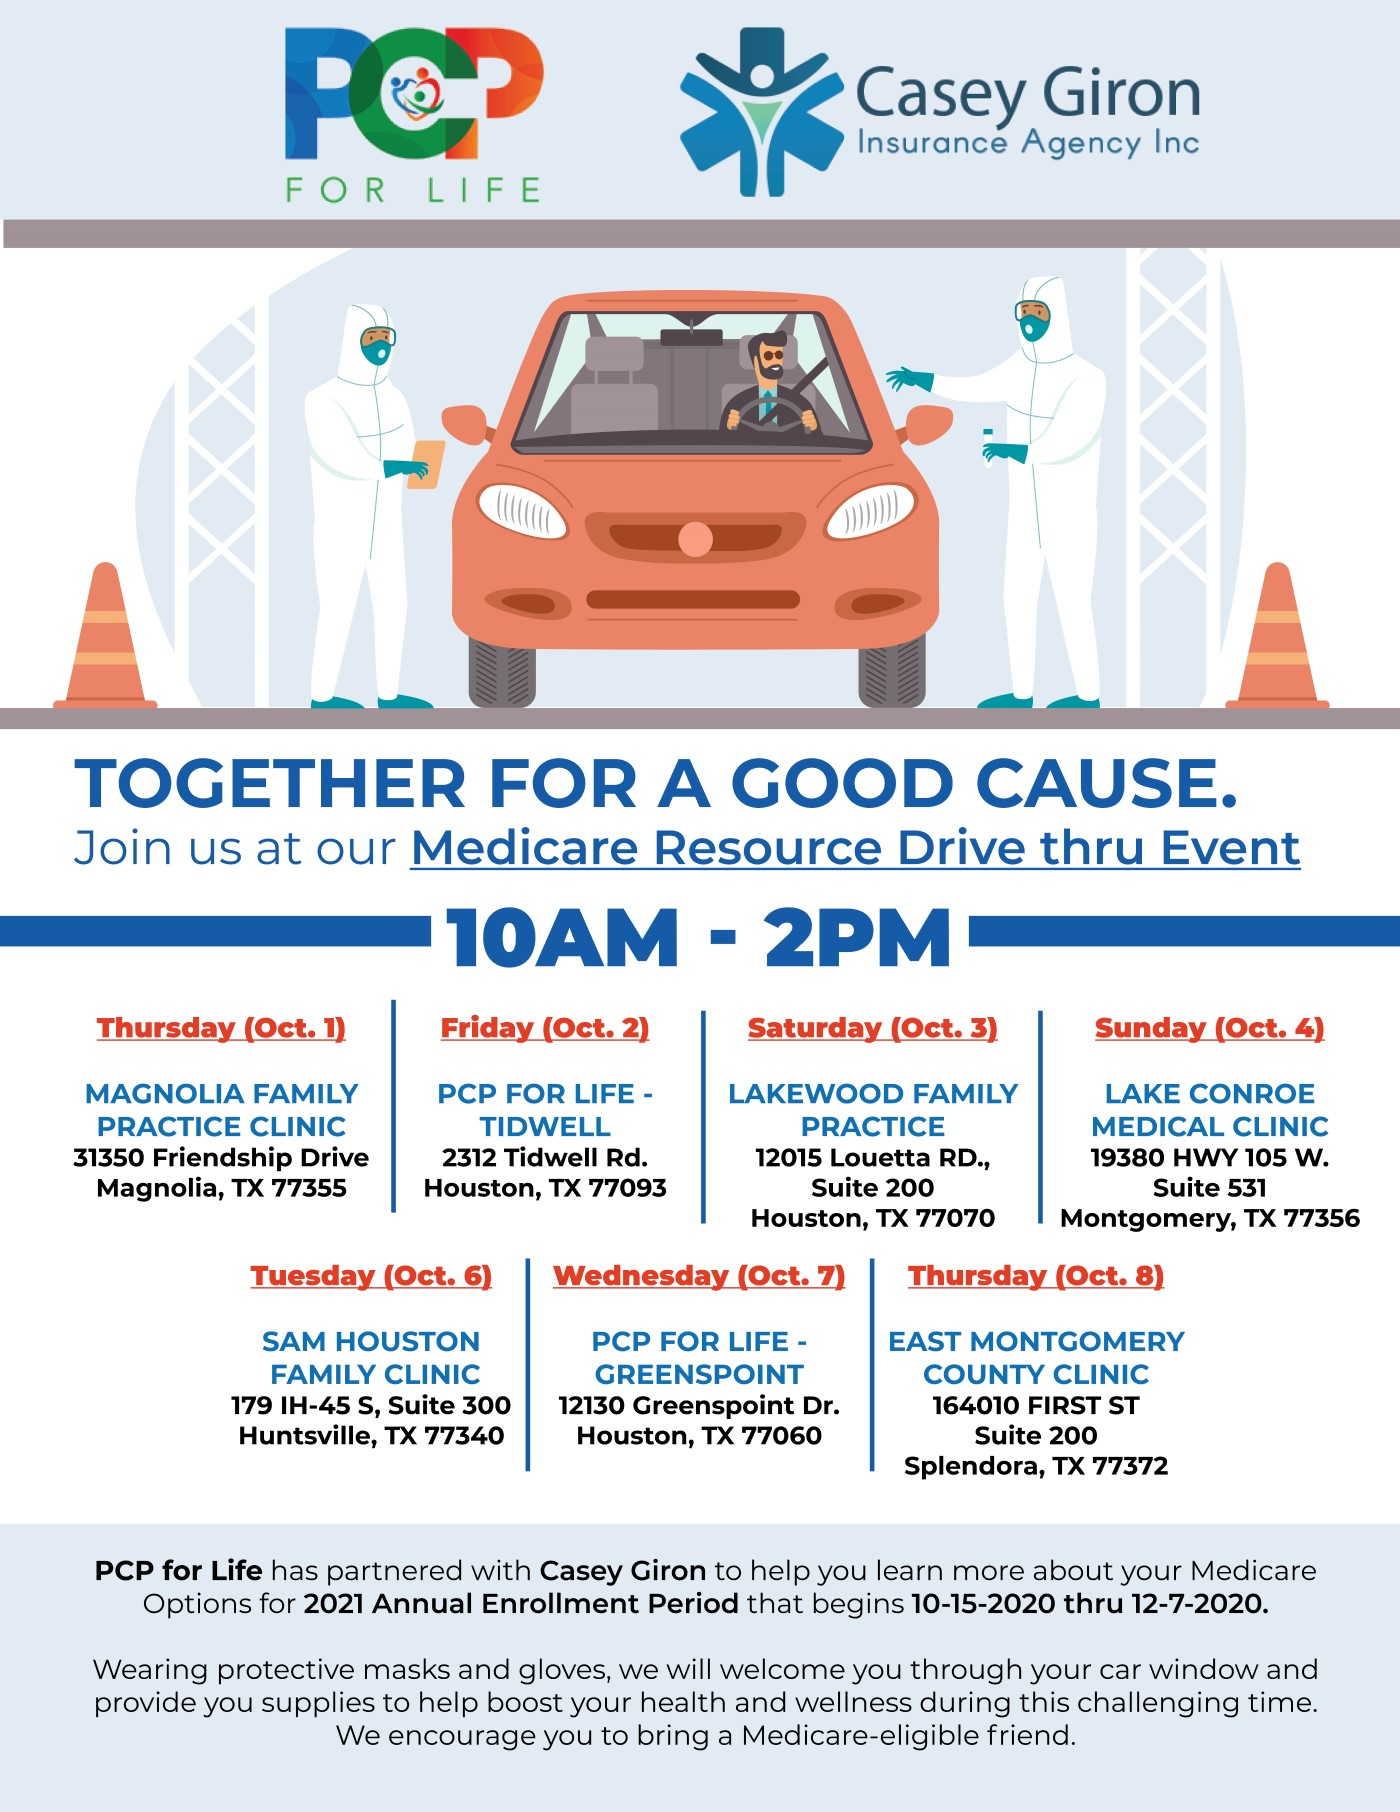 PCP-For-Life-Drive-Thru-Event